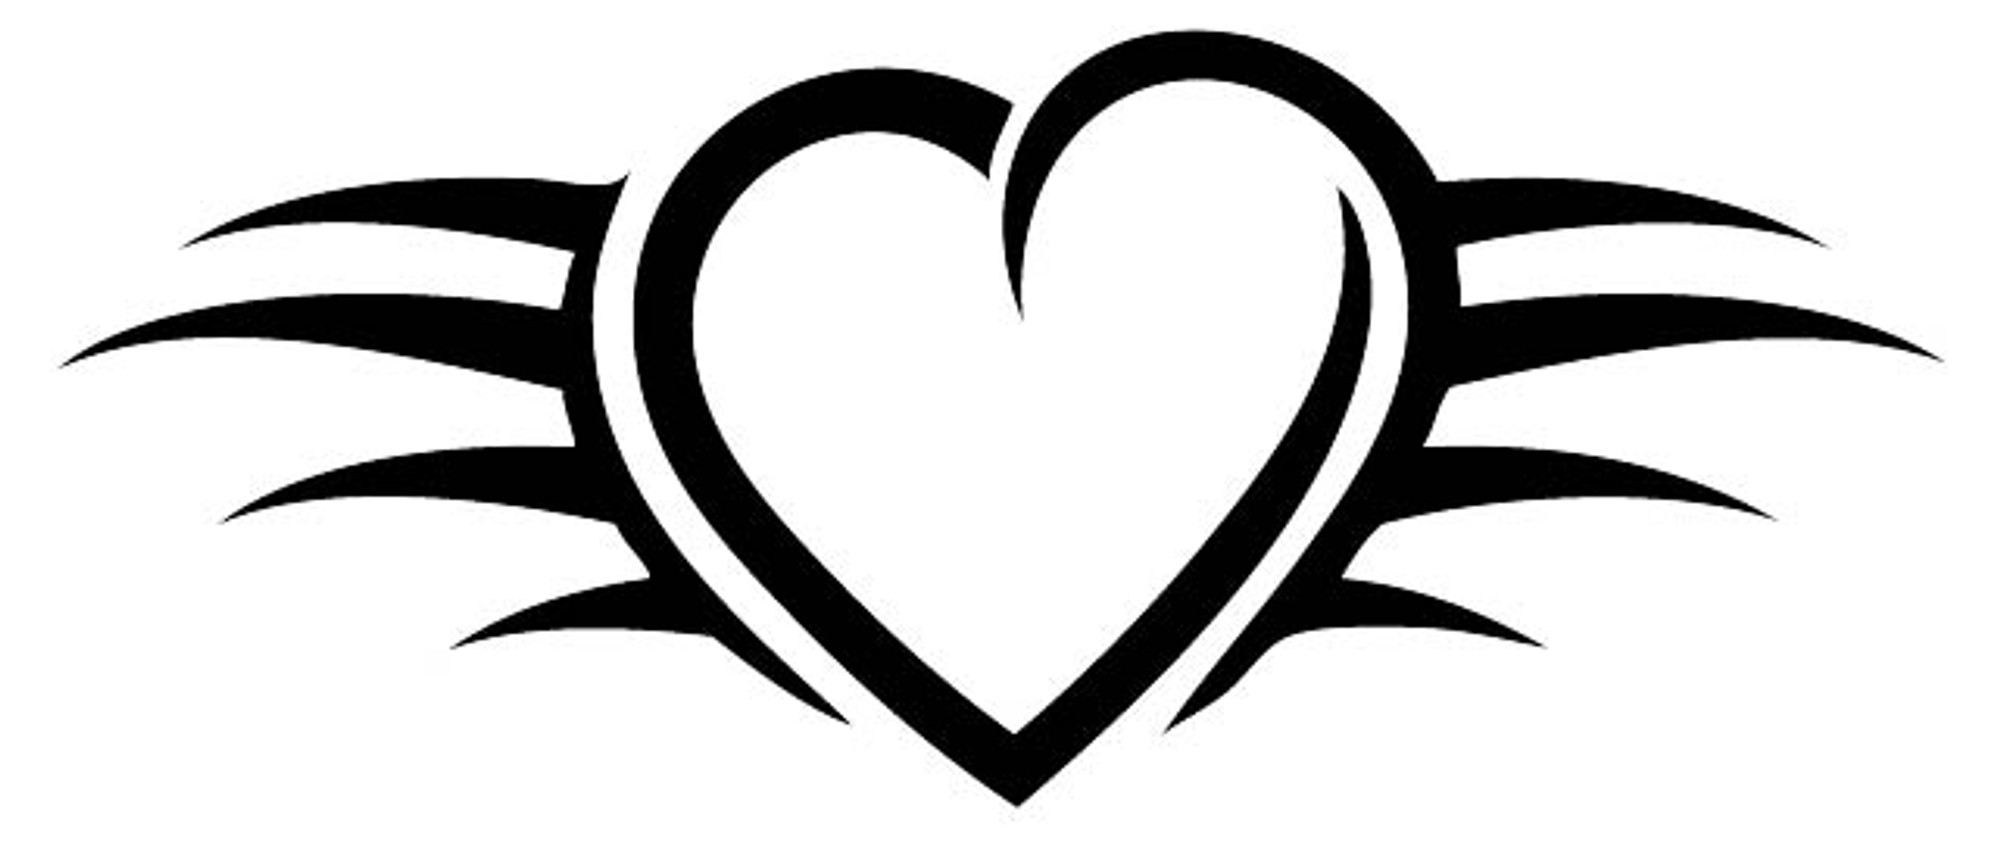 Heart Car Decals Car Stickers Heart Car Decal 04